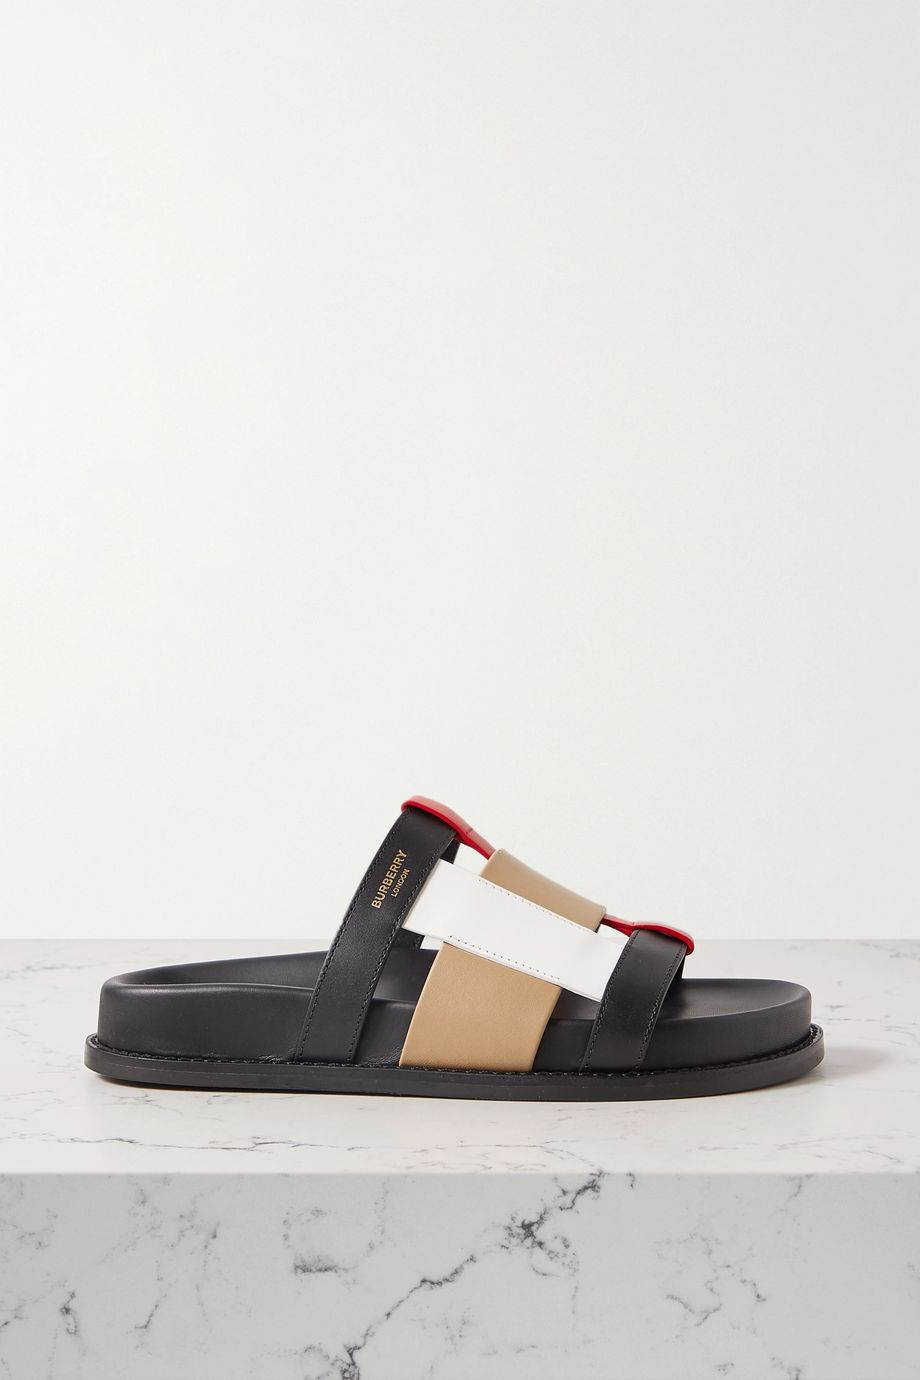 Burberry Color-block leather slides